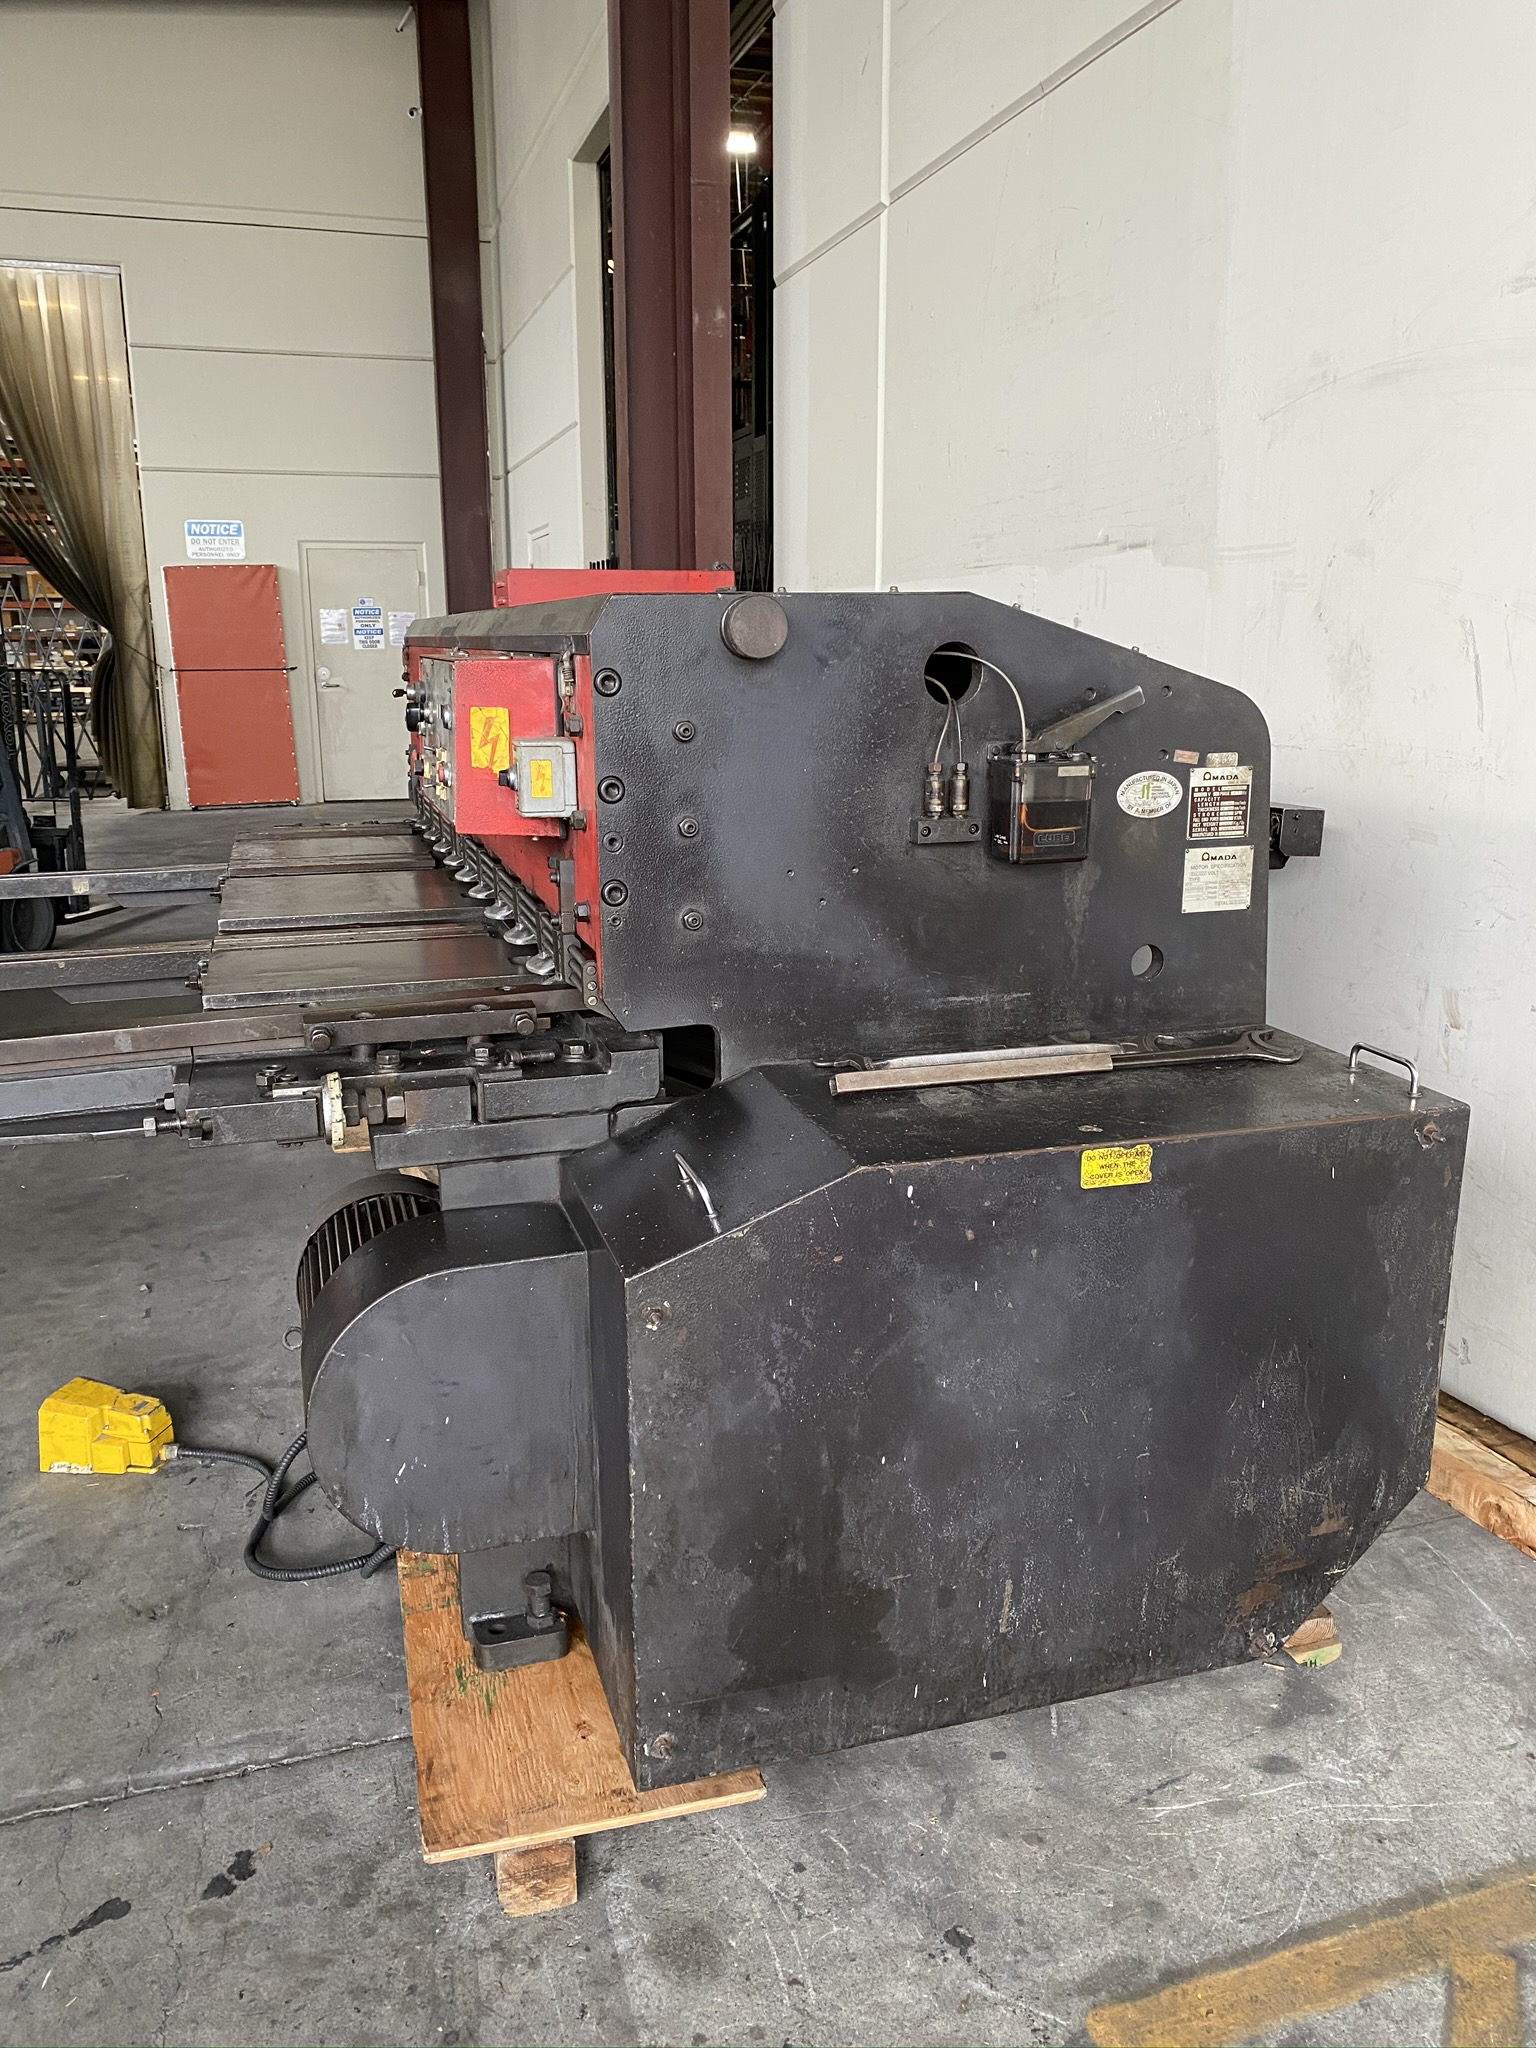 1990 AMADA M-2560 SHEAR, 2500 MM, LENGTH, 6 MM THICKNESS, MECHANICAL, SHEET SUPPORTS - Image 10 of 14